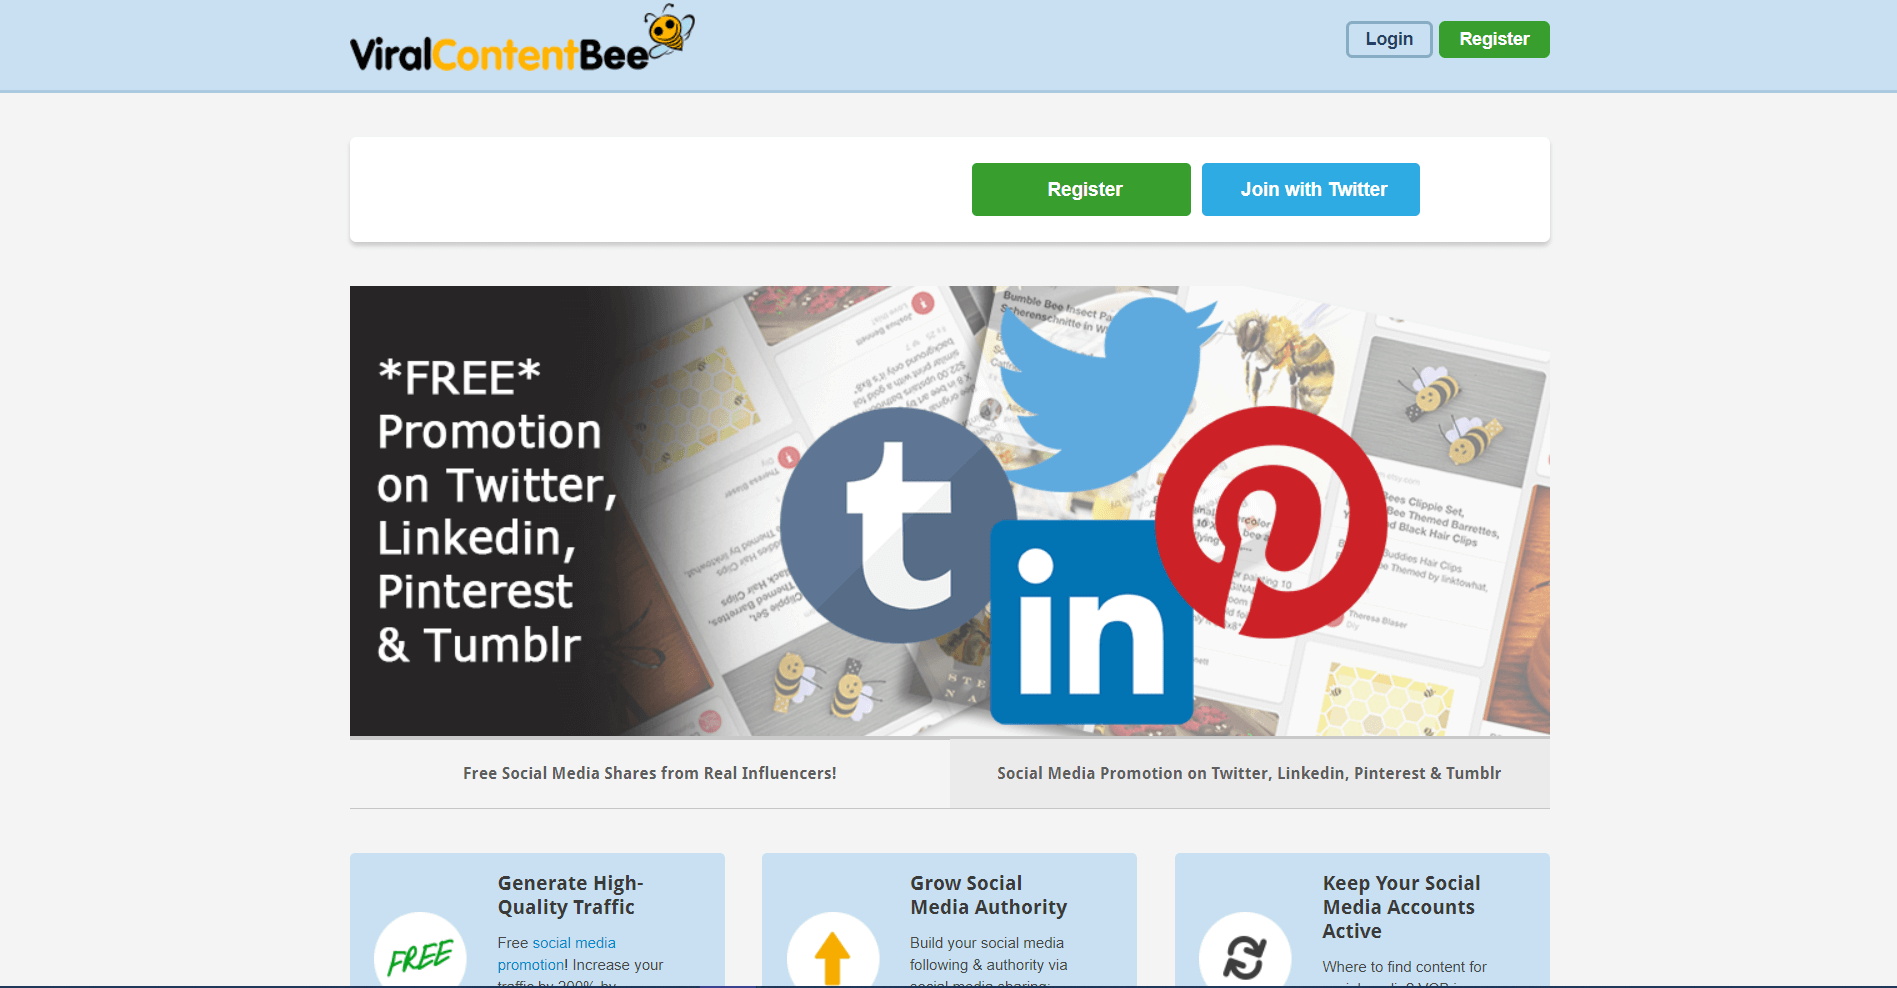 viralcontentbee Content Promotion Platforms and Tools